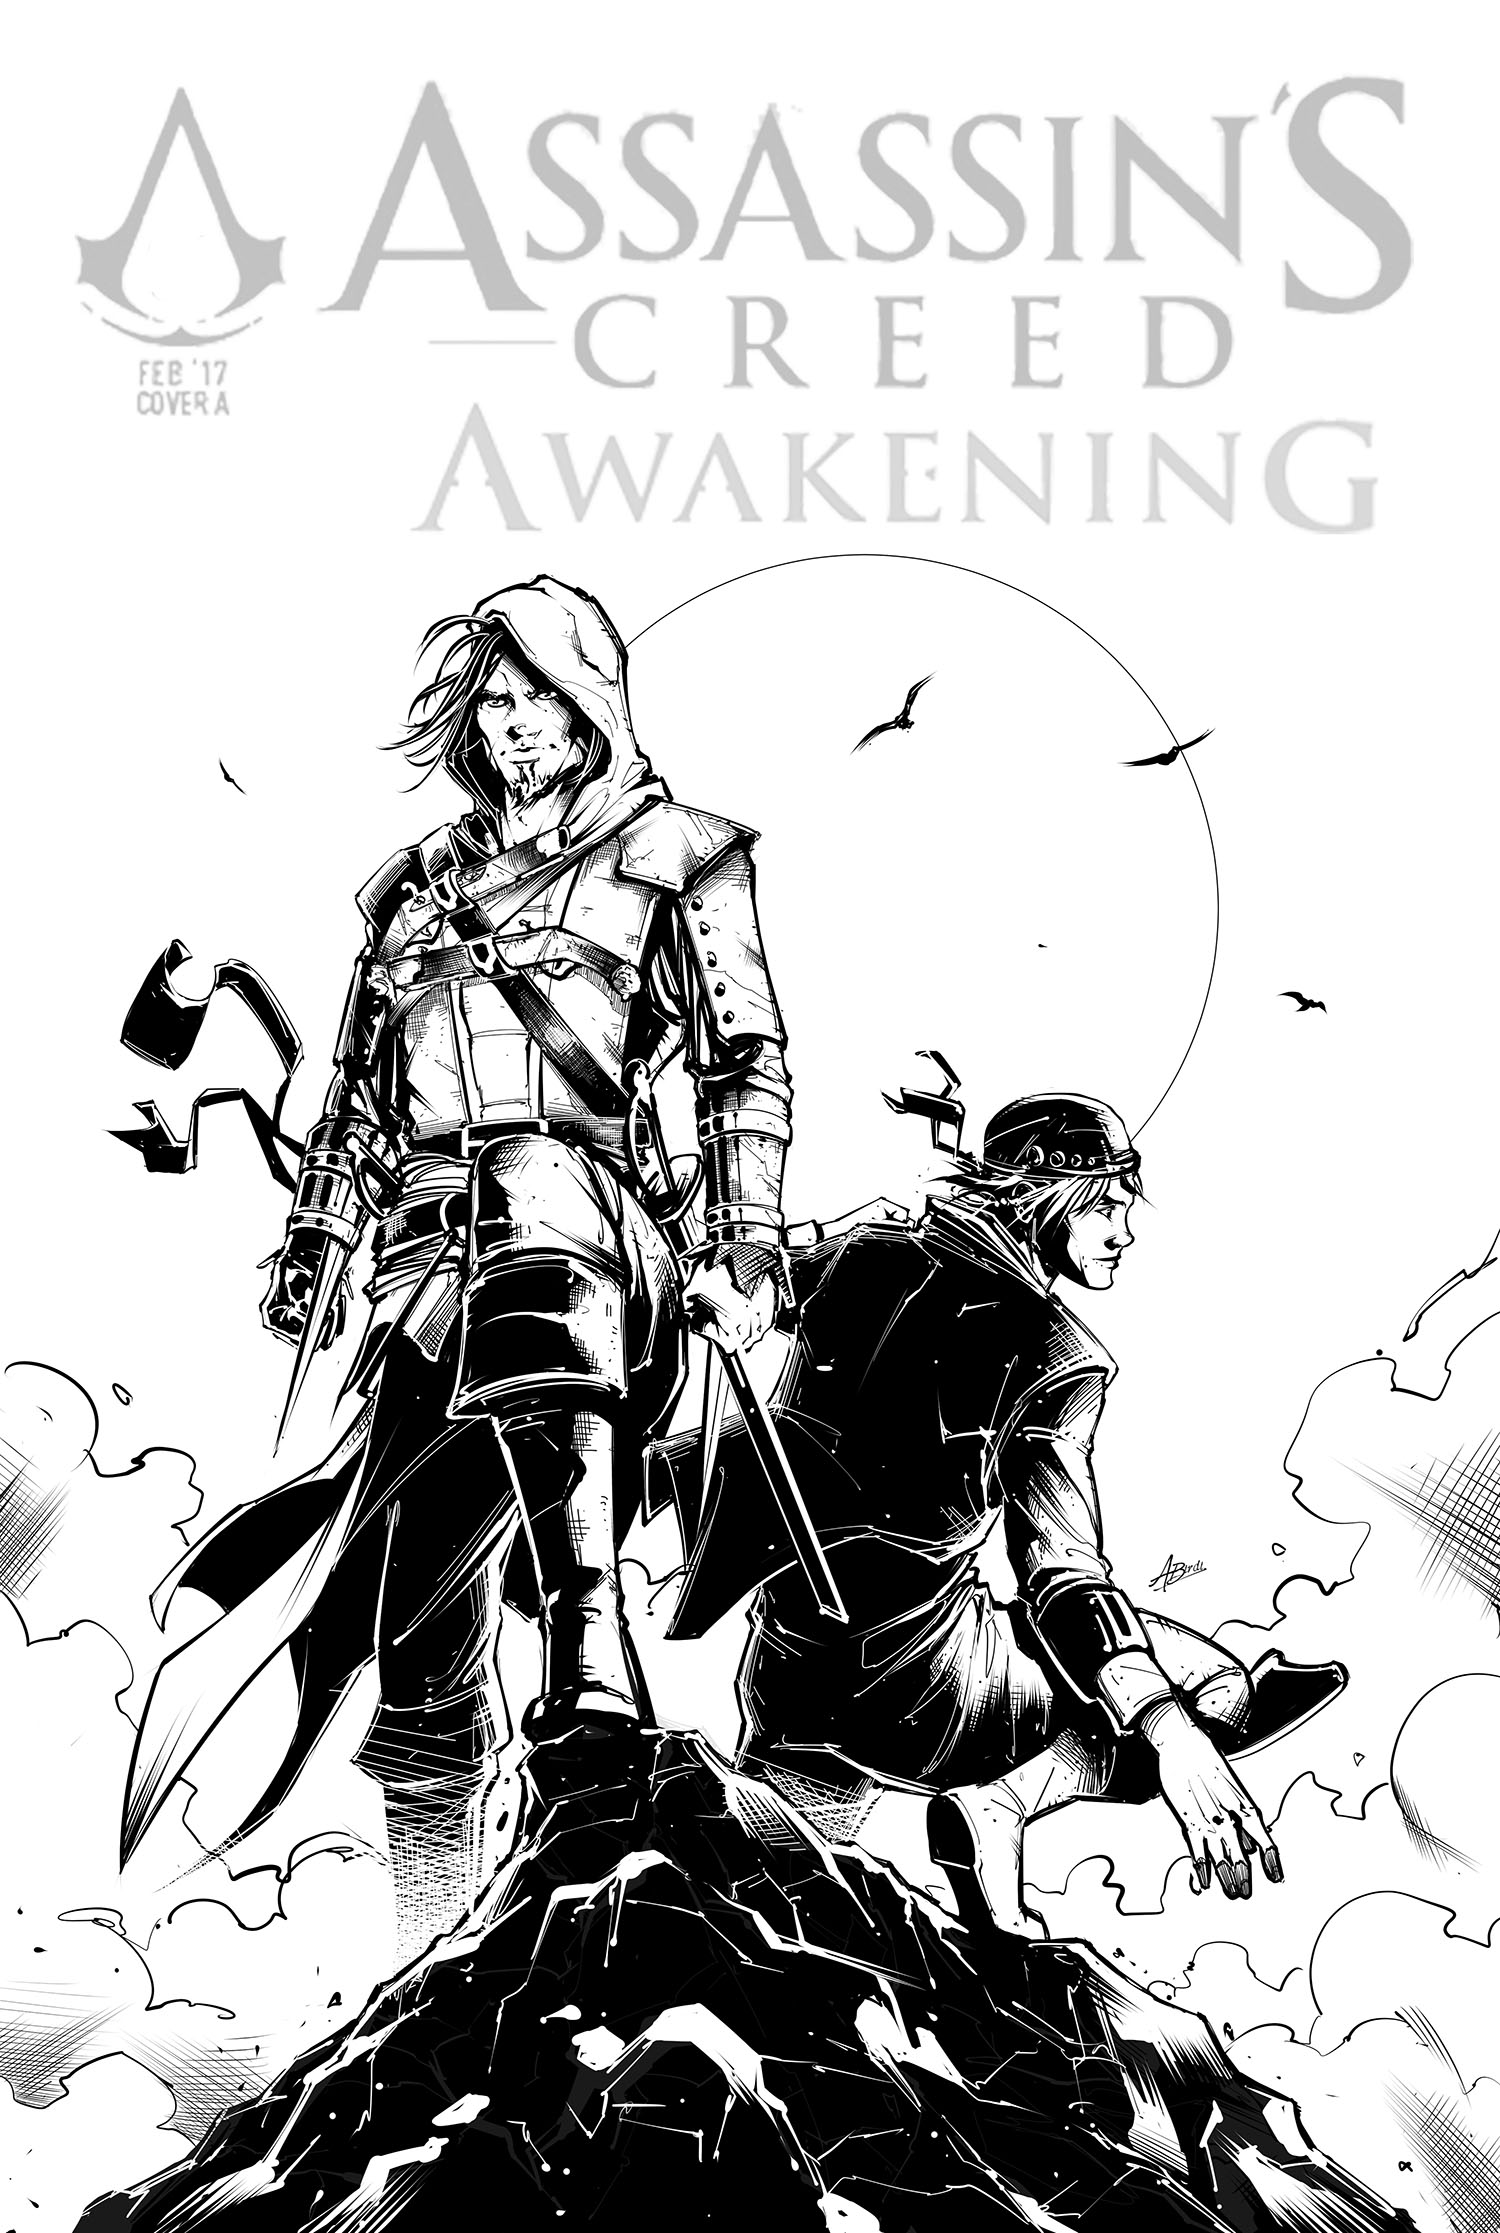 Assassins_Creed_5_cover_inks_mk2_v2_low_res